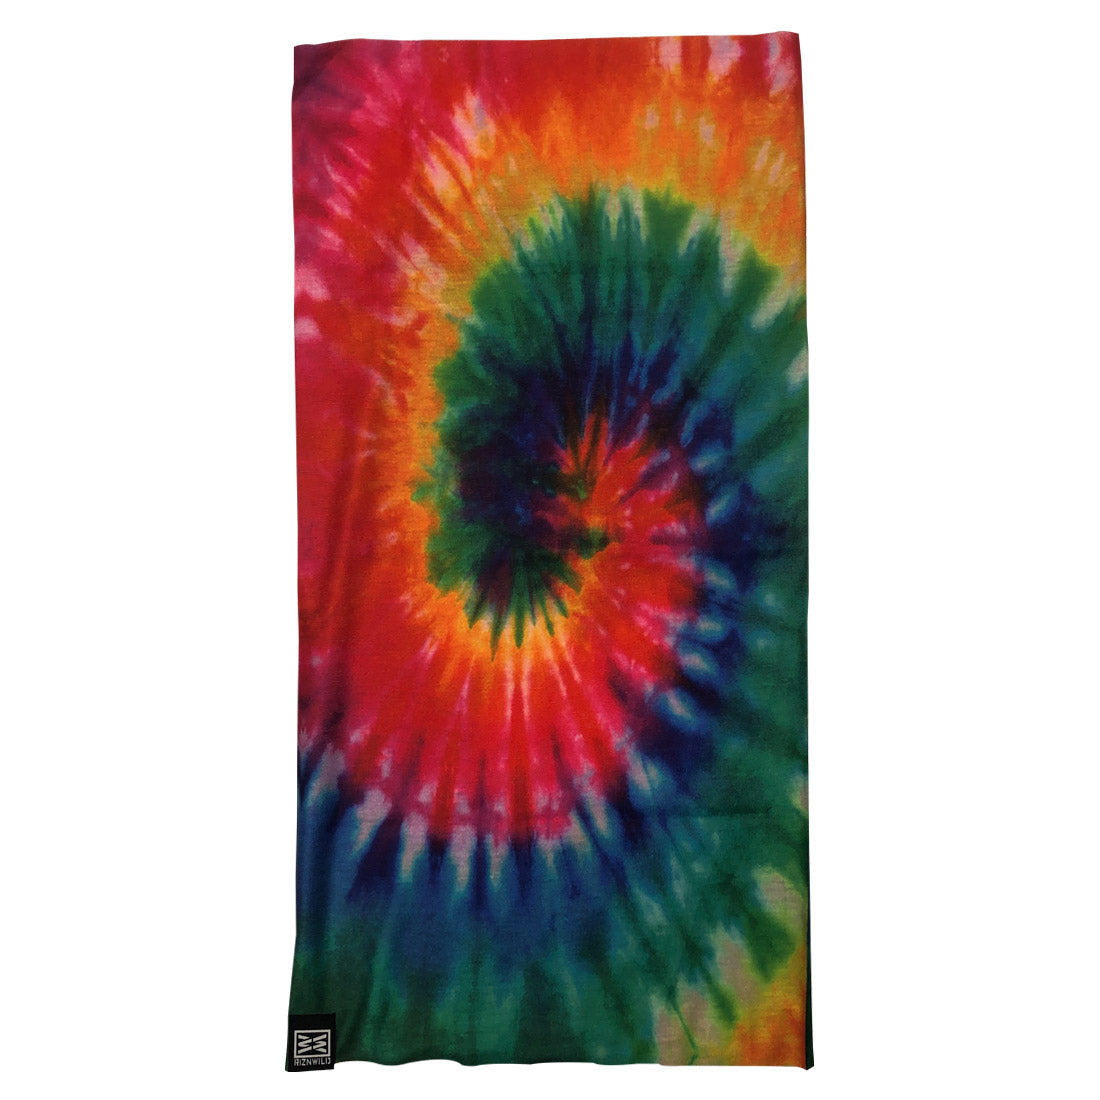 TWISTER GAITER MASK IN RAINBOW TIE-DYE